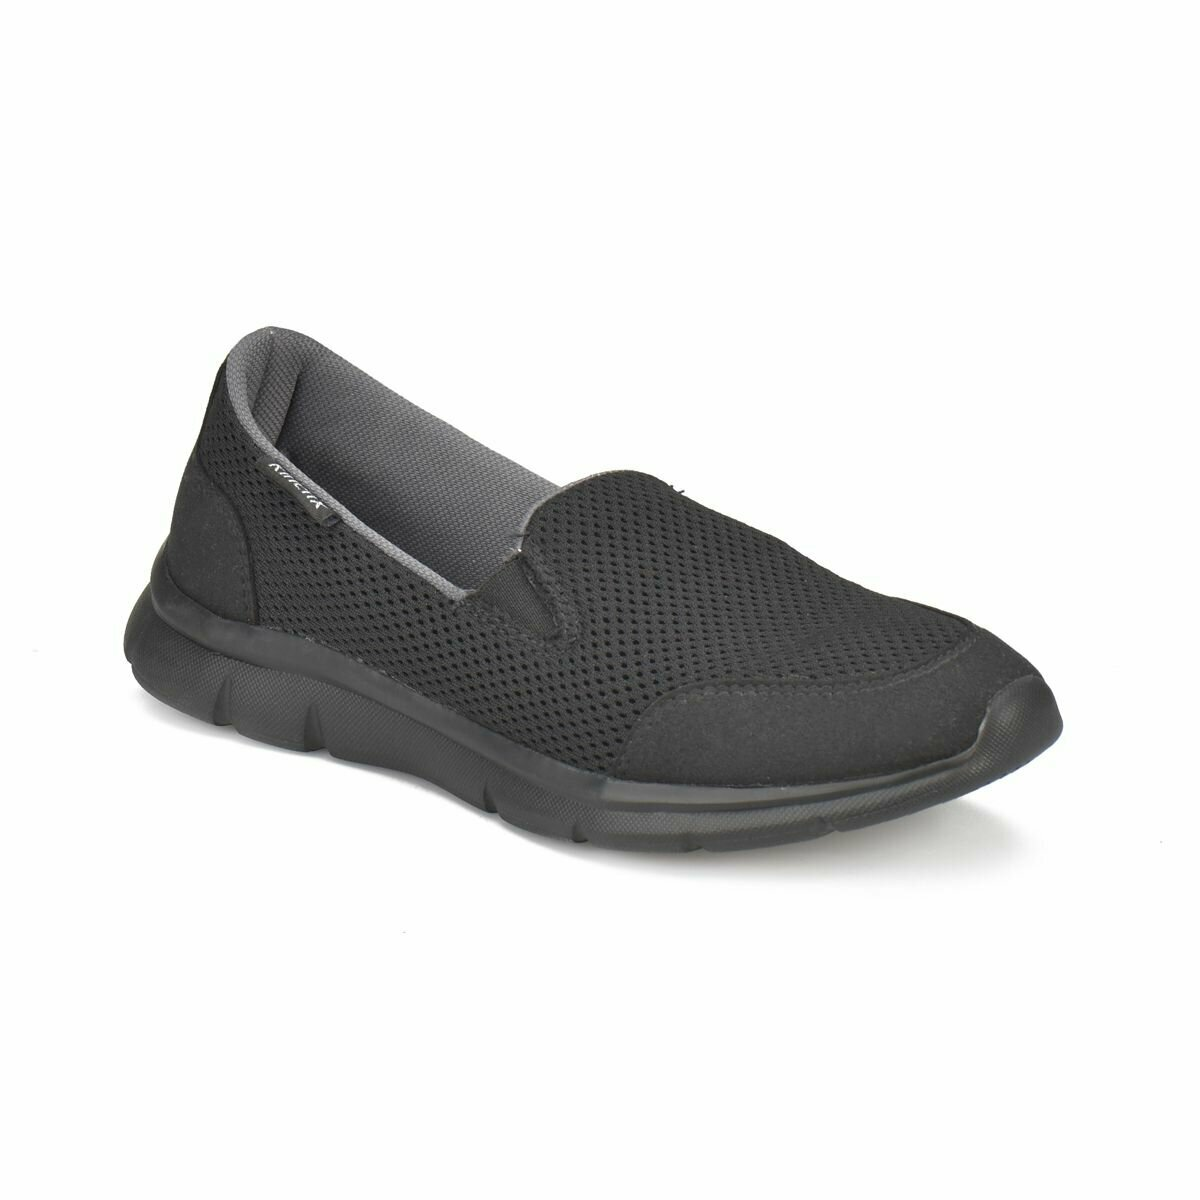 FLO MARI Black Women Comfort Shoes KINETIX